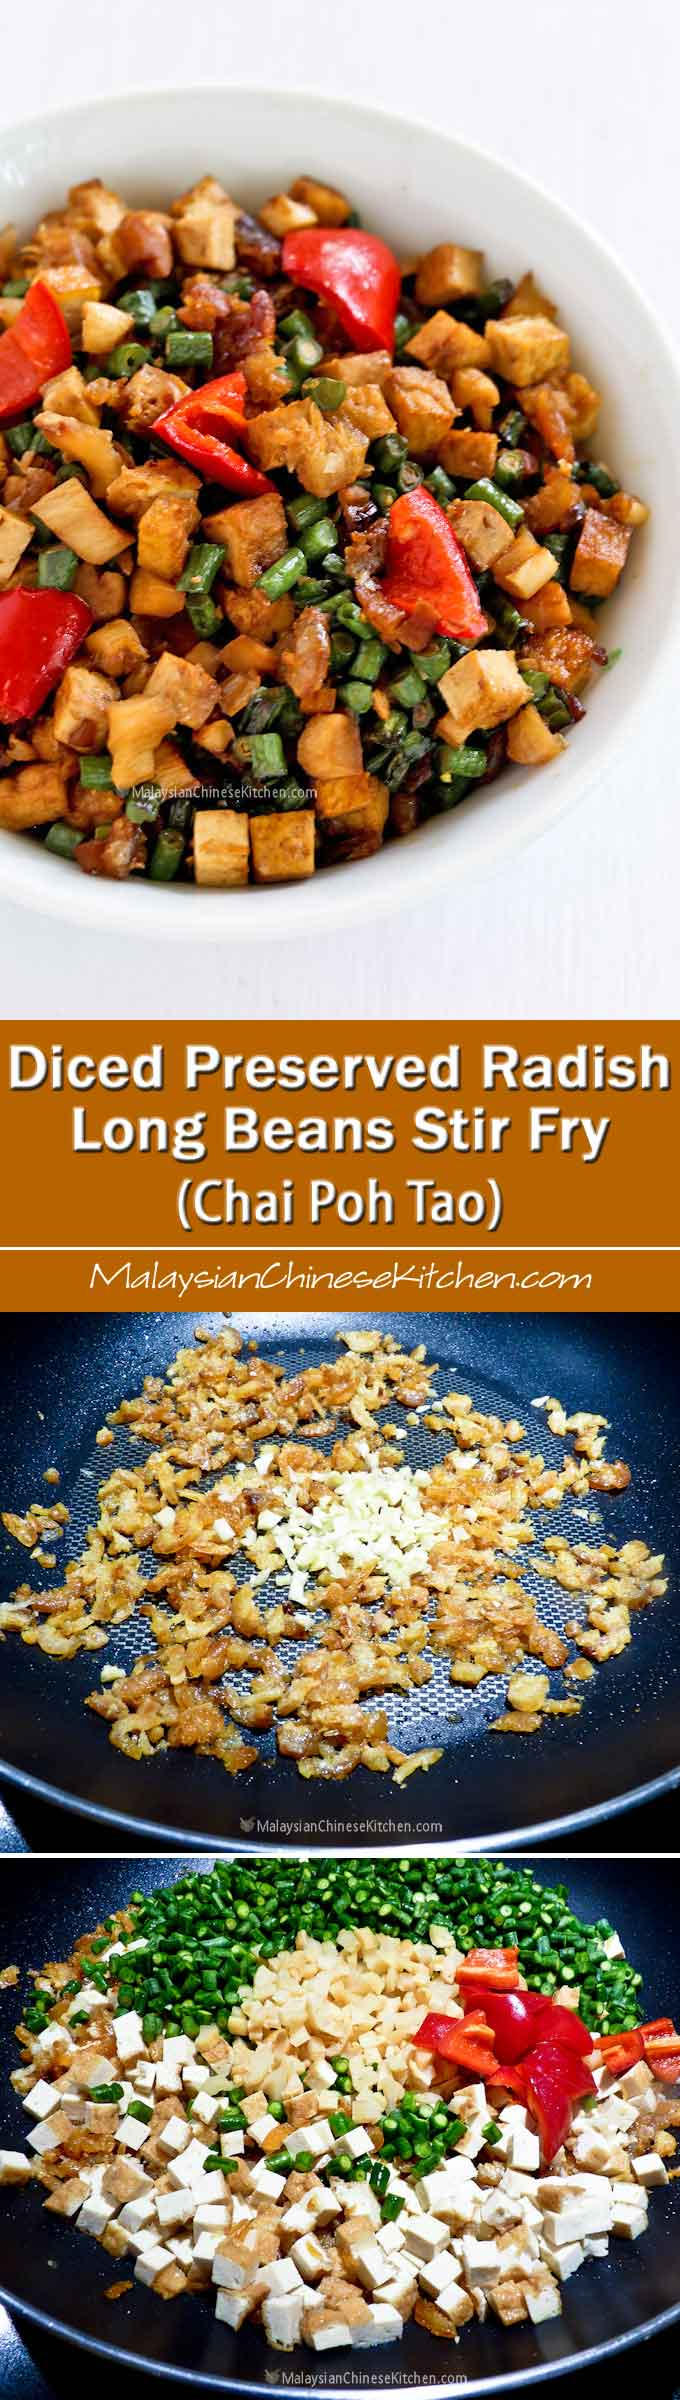 Diced Preserved Radish Long Beans Stir Fry (Chai Poh Tao) – a medley of diced vegetables with a sweet salty flavor that goes well with plain congee. | MalaysianChineseKitchen.com